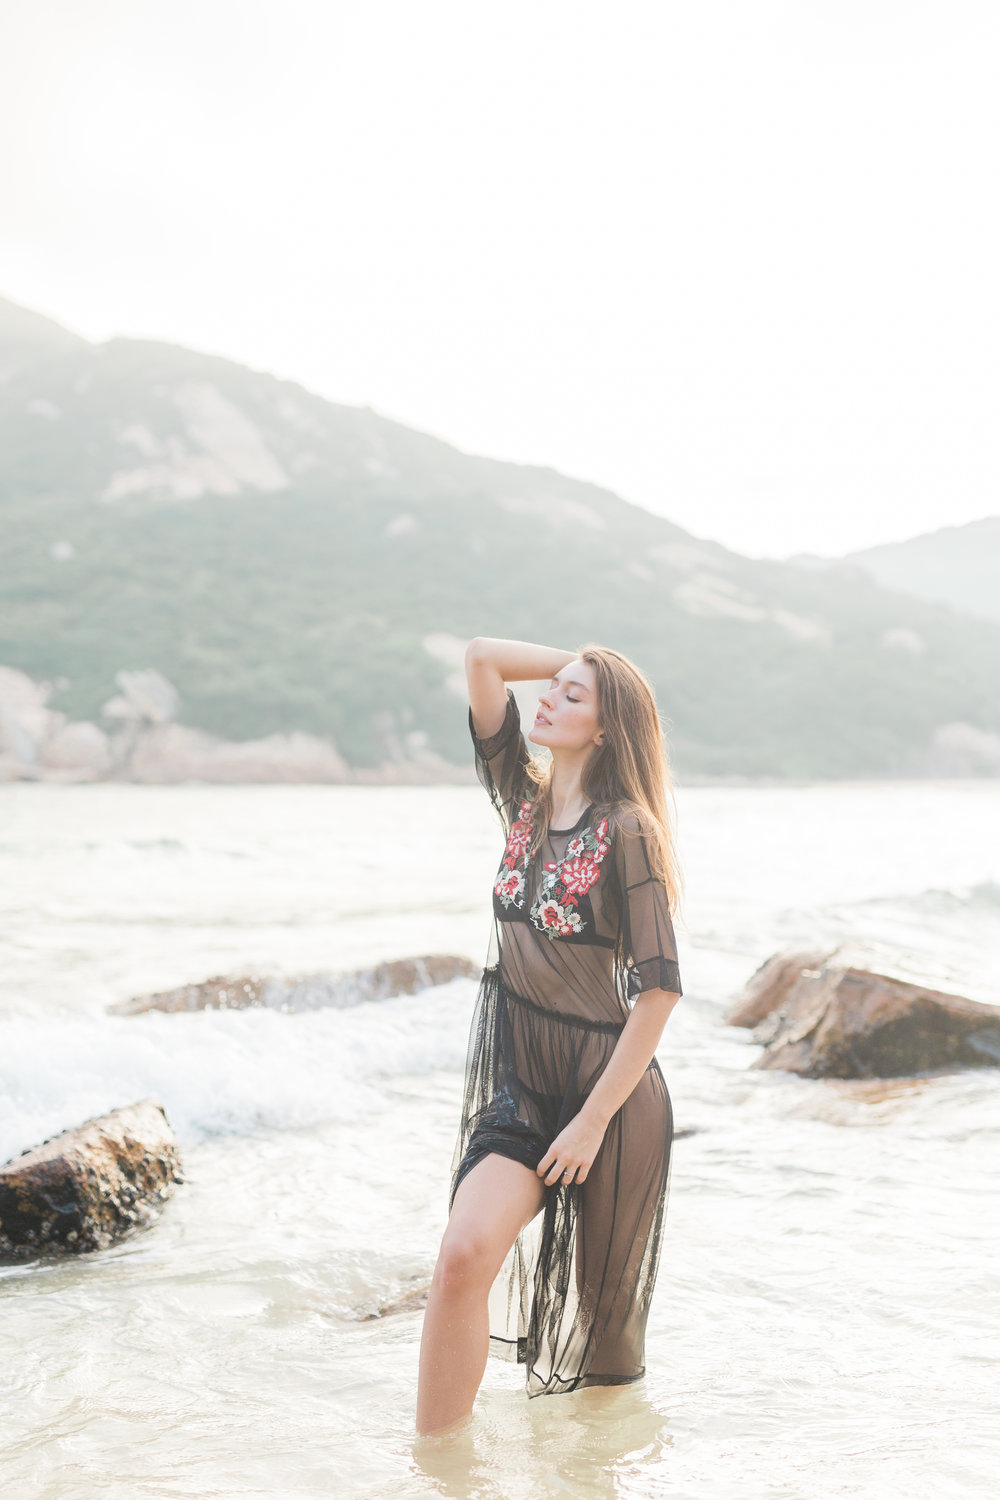 Suzanne_Li_photography_HONG_KONG_SHOOT-26.jpg